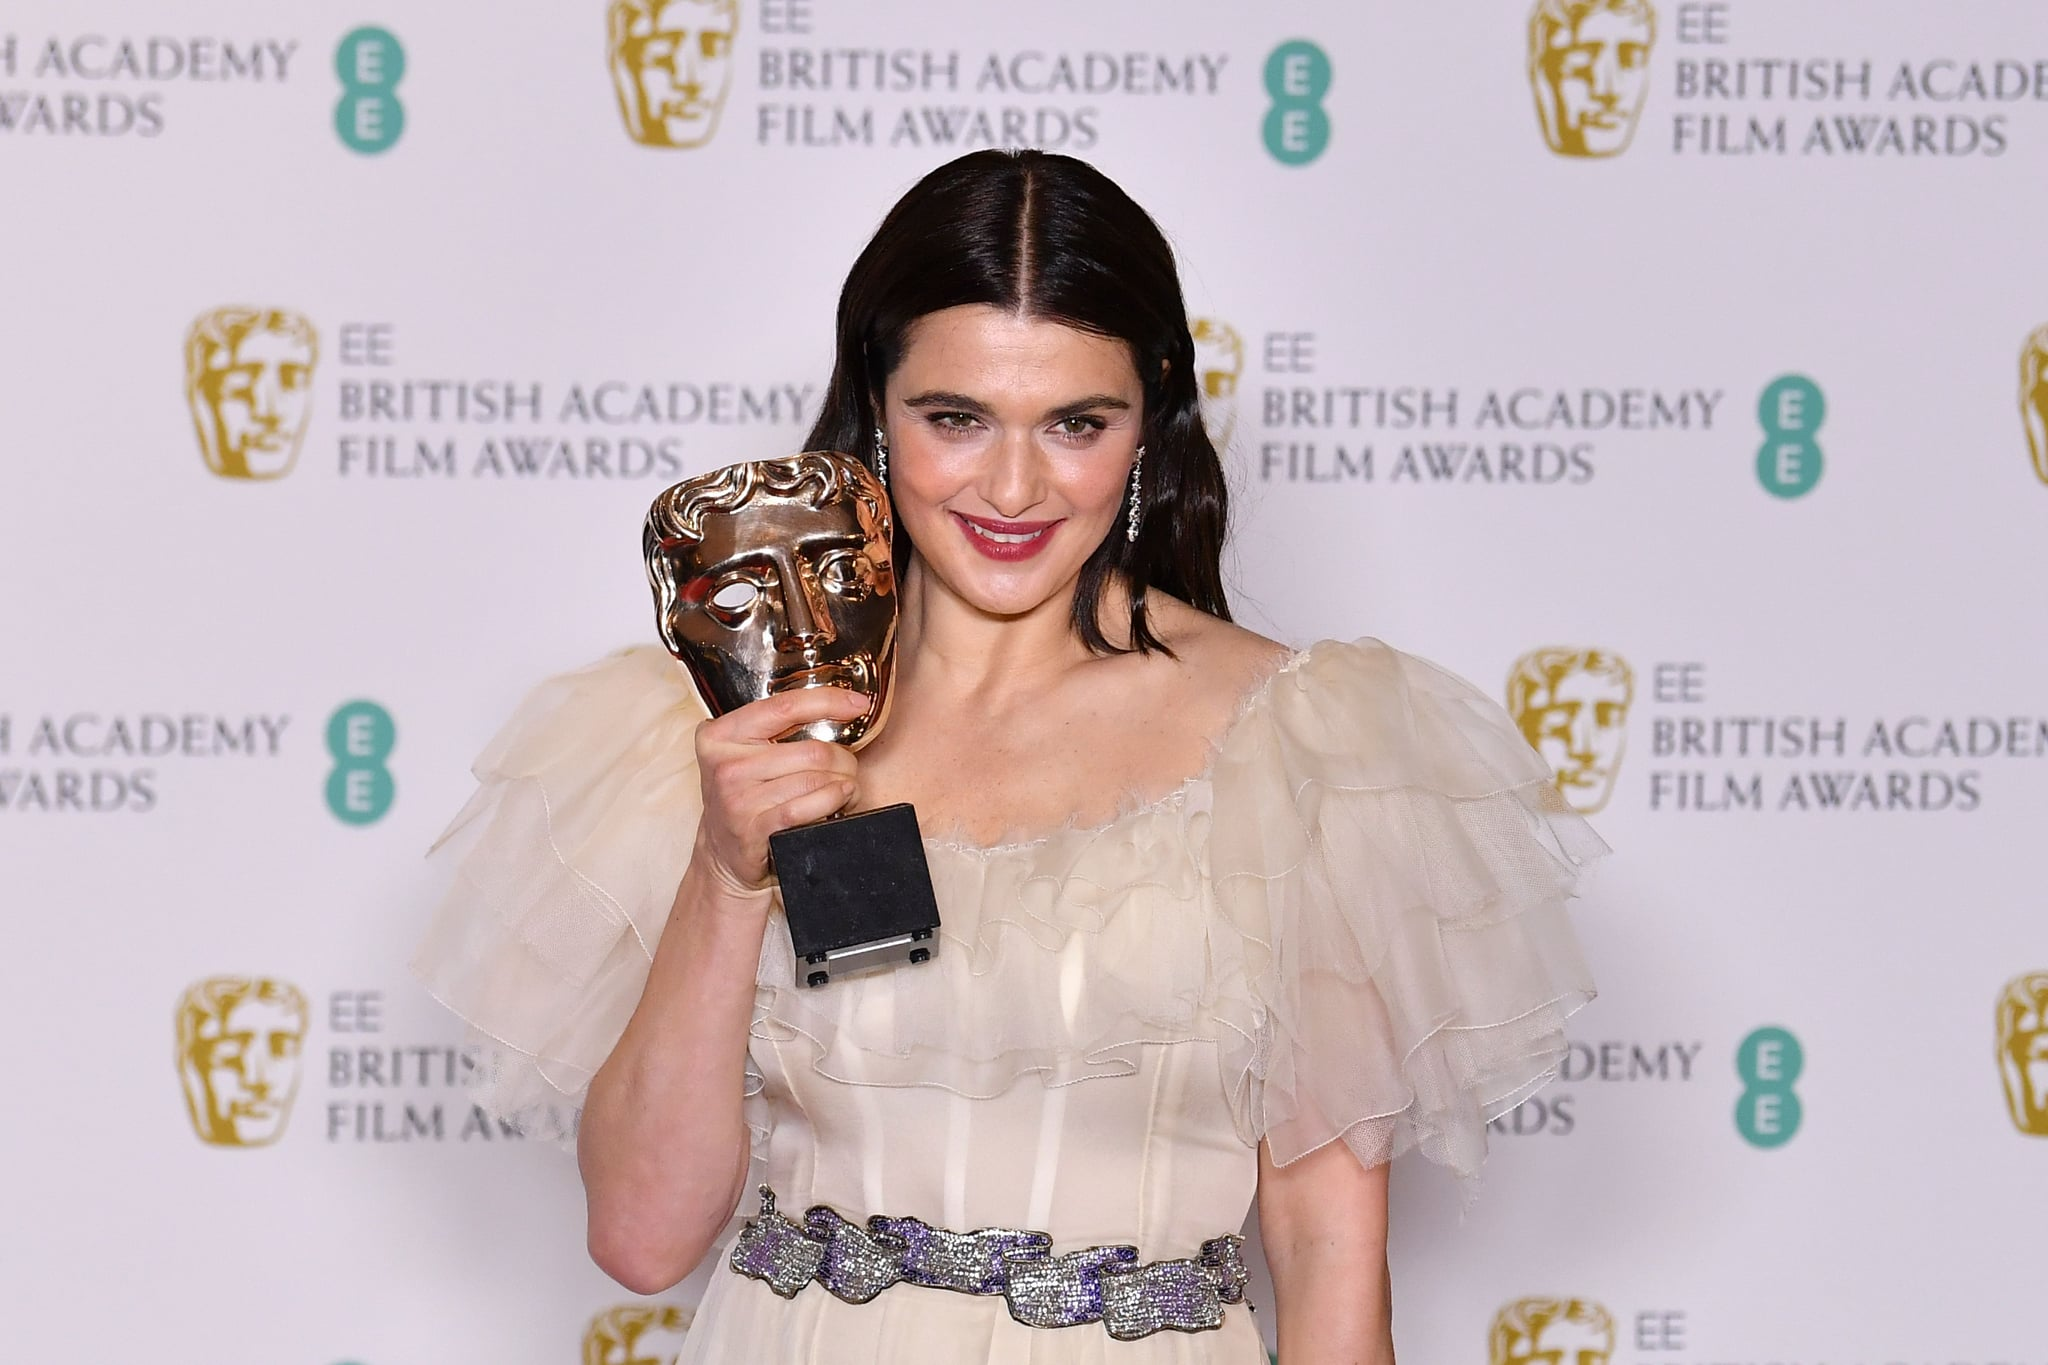 British actress Rachel Weisz poses with the award for a Supporting Actress for her work on the film 'The Favourite' at the BAFTA British Academy Film Awards at the Royal Albert Hall in London on February 10, 2019. (Photo by Ben STANSALL / AFP)        (Photo credit should read BEN STANSALL/AFP/Getty Images)